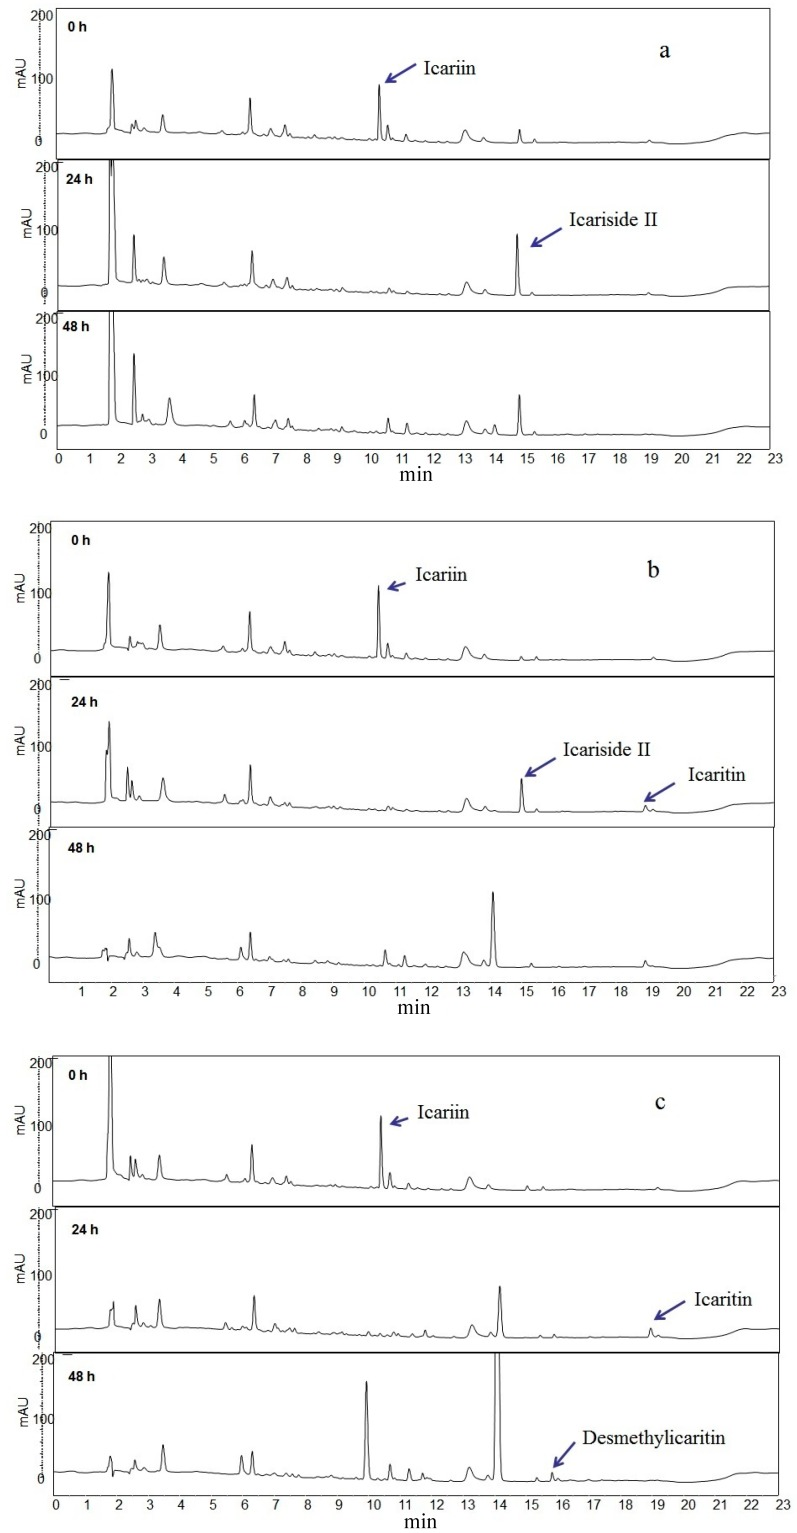 HPLC chromatograms of icariin biotransformation products. Each chromatogram was obtained from the different human intestinal microflora. Microflora a , b and c showed icariside II, icaritin and desmethylicaritin formation, respectively, after 48 h.